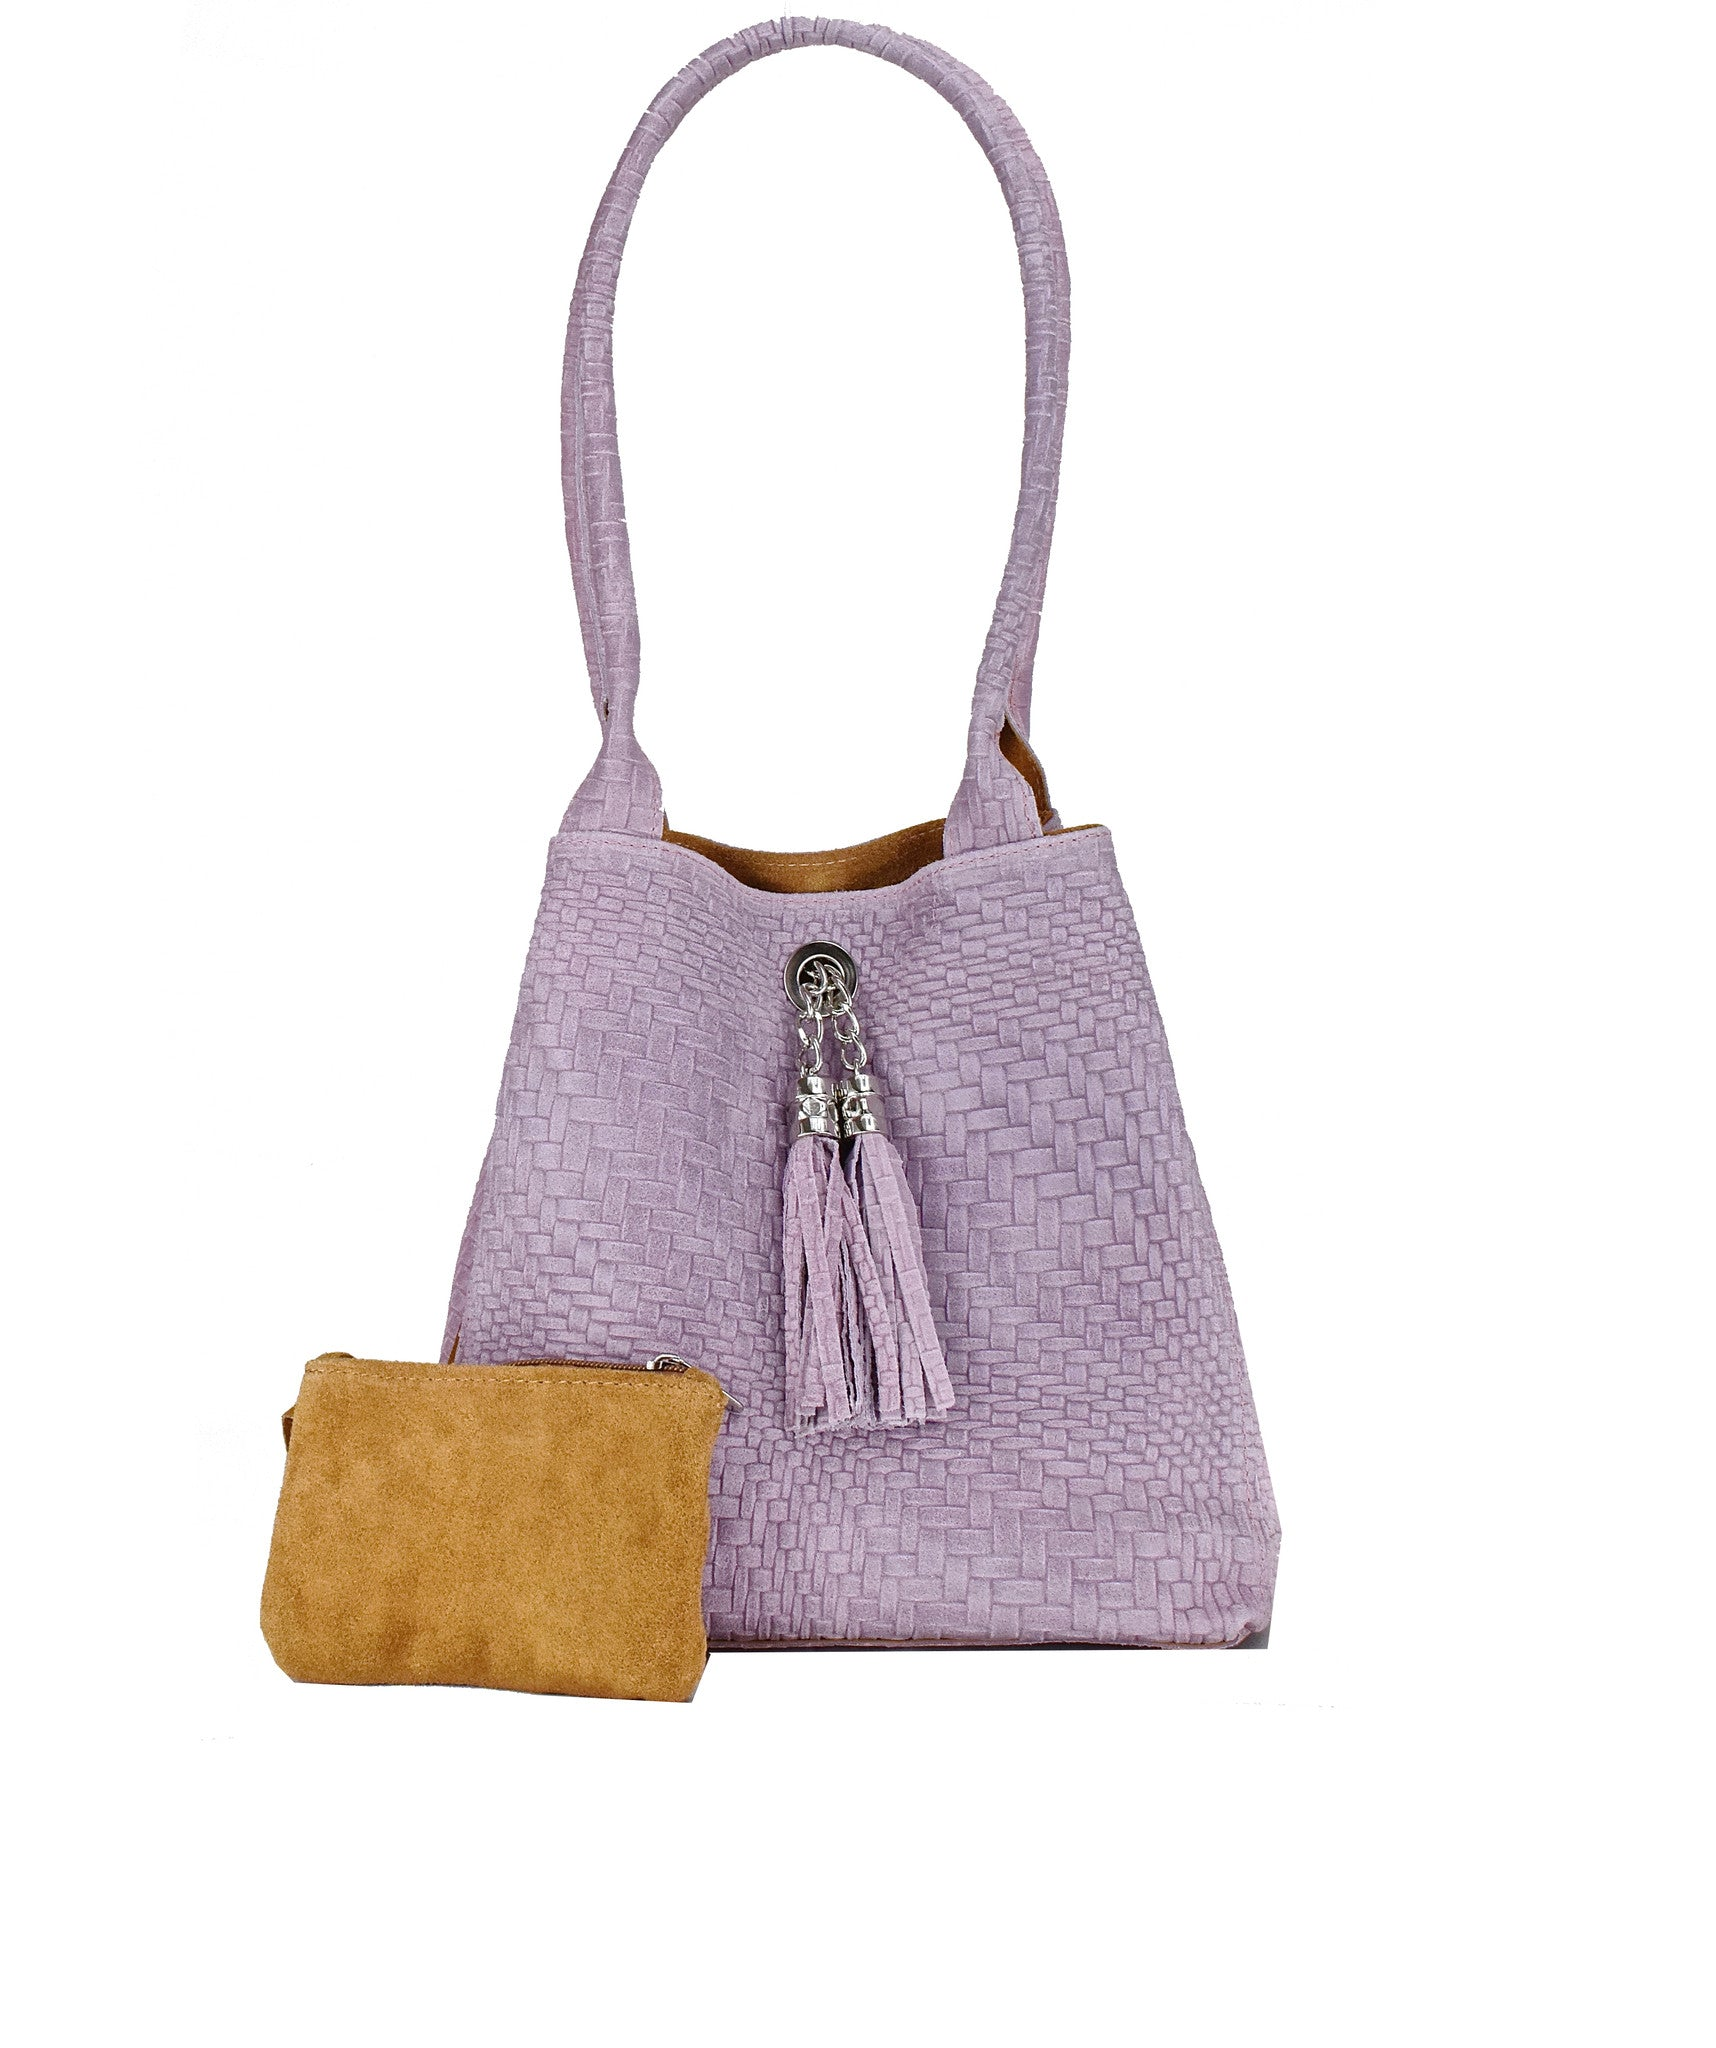 23289d4a29 POPPI WOVEN. Lilia italian leather tote bag front view